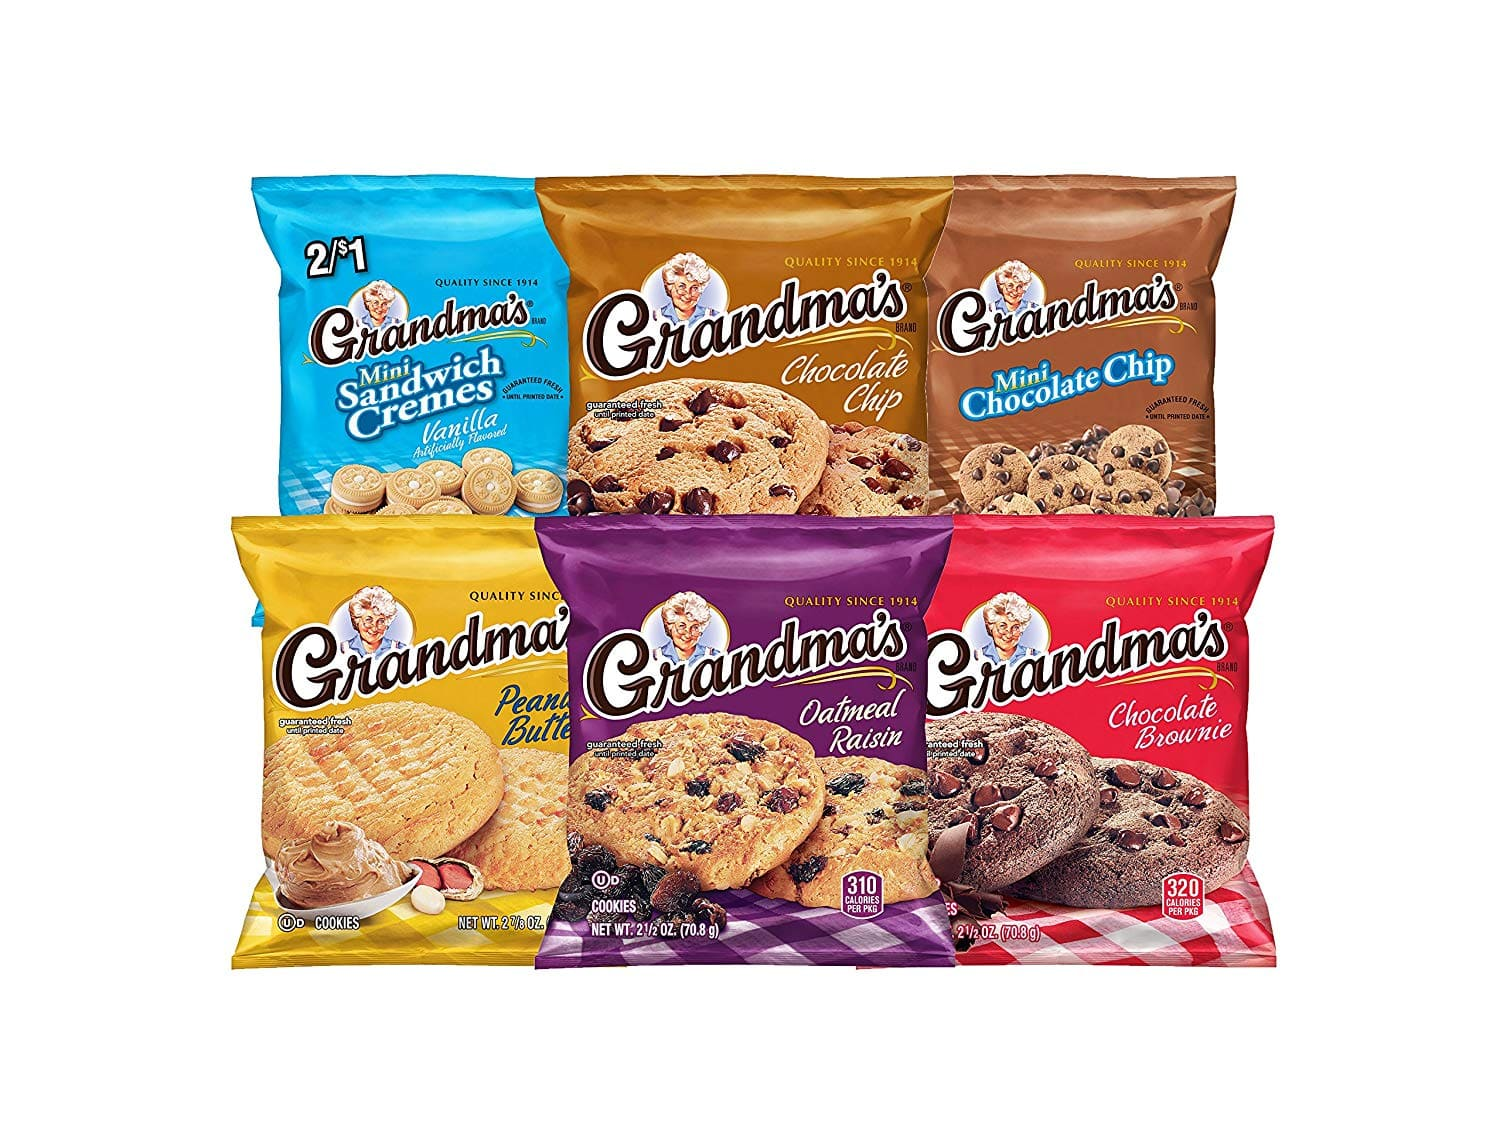 30-Count Grandma's Cookies Variety Pack for $9.23 w/ S&S + Free Shipping